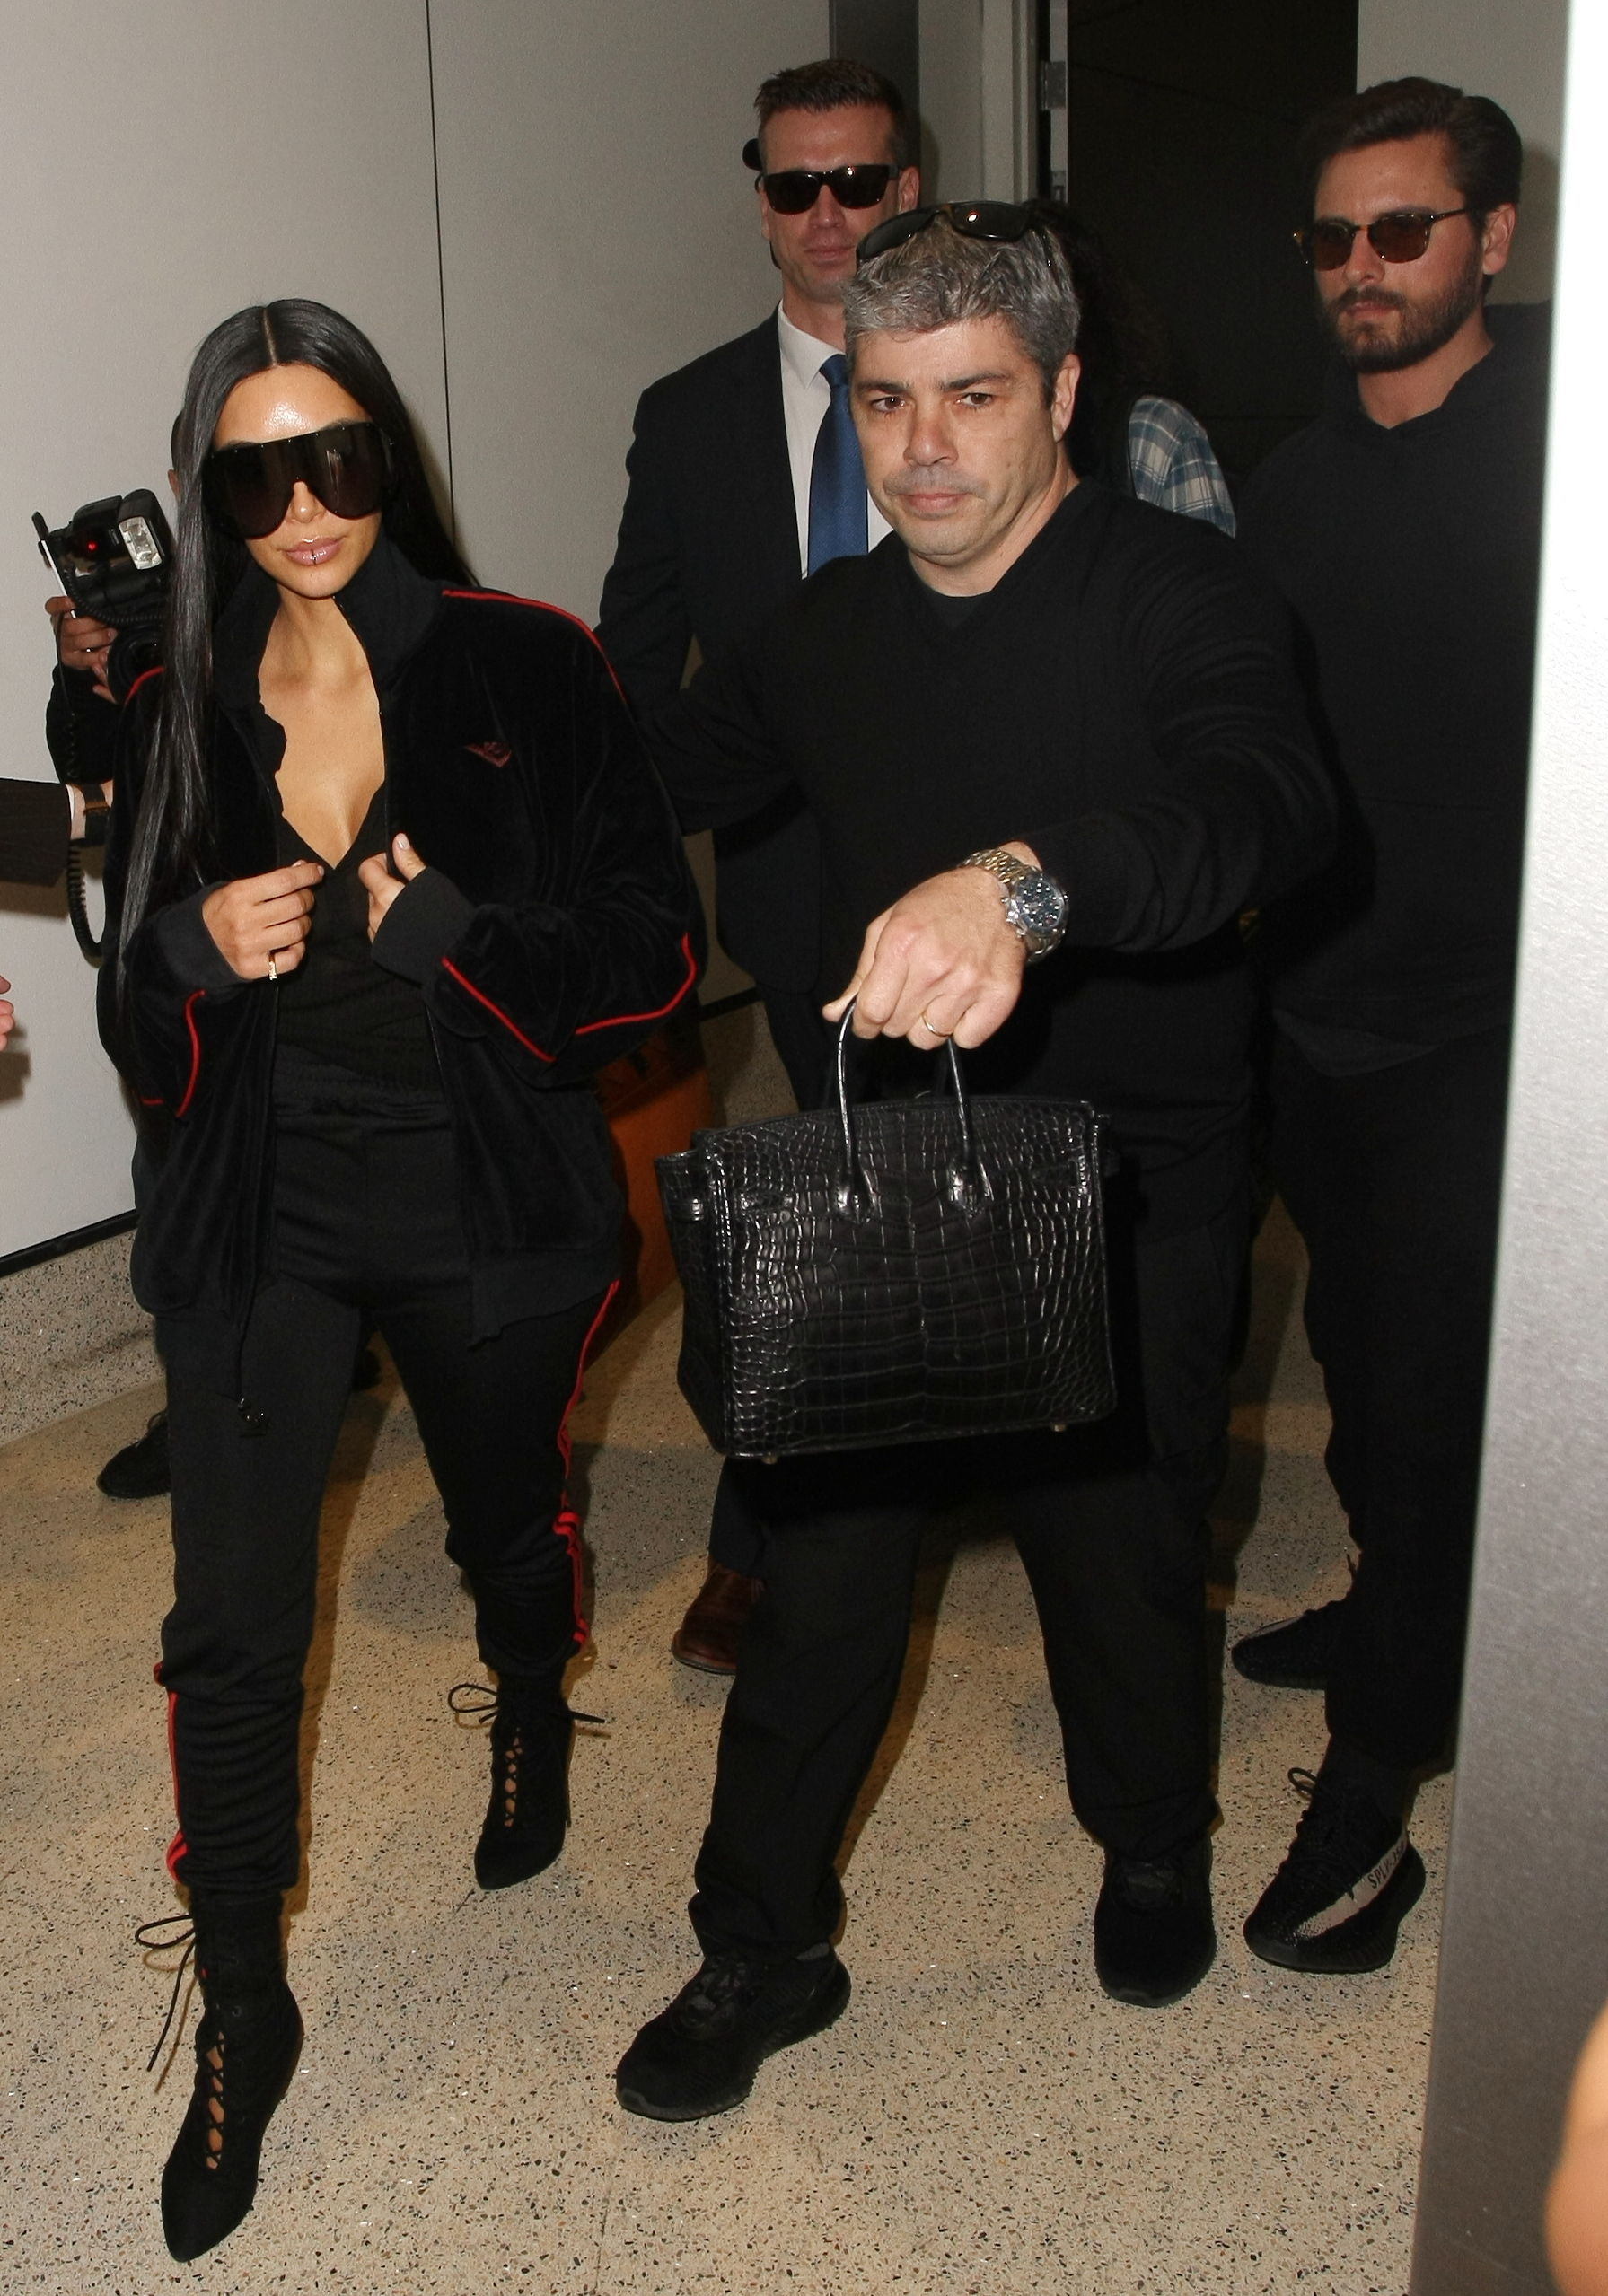 Kim Kardashian jets out of LAX airport in Los Angeles (Photo credit: Splash News)